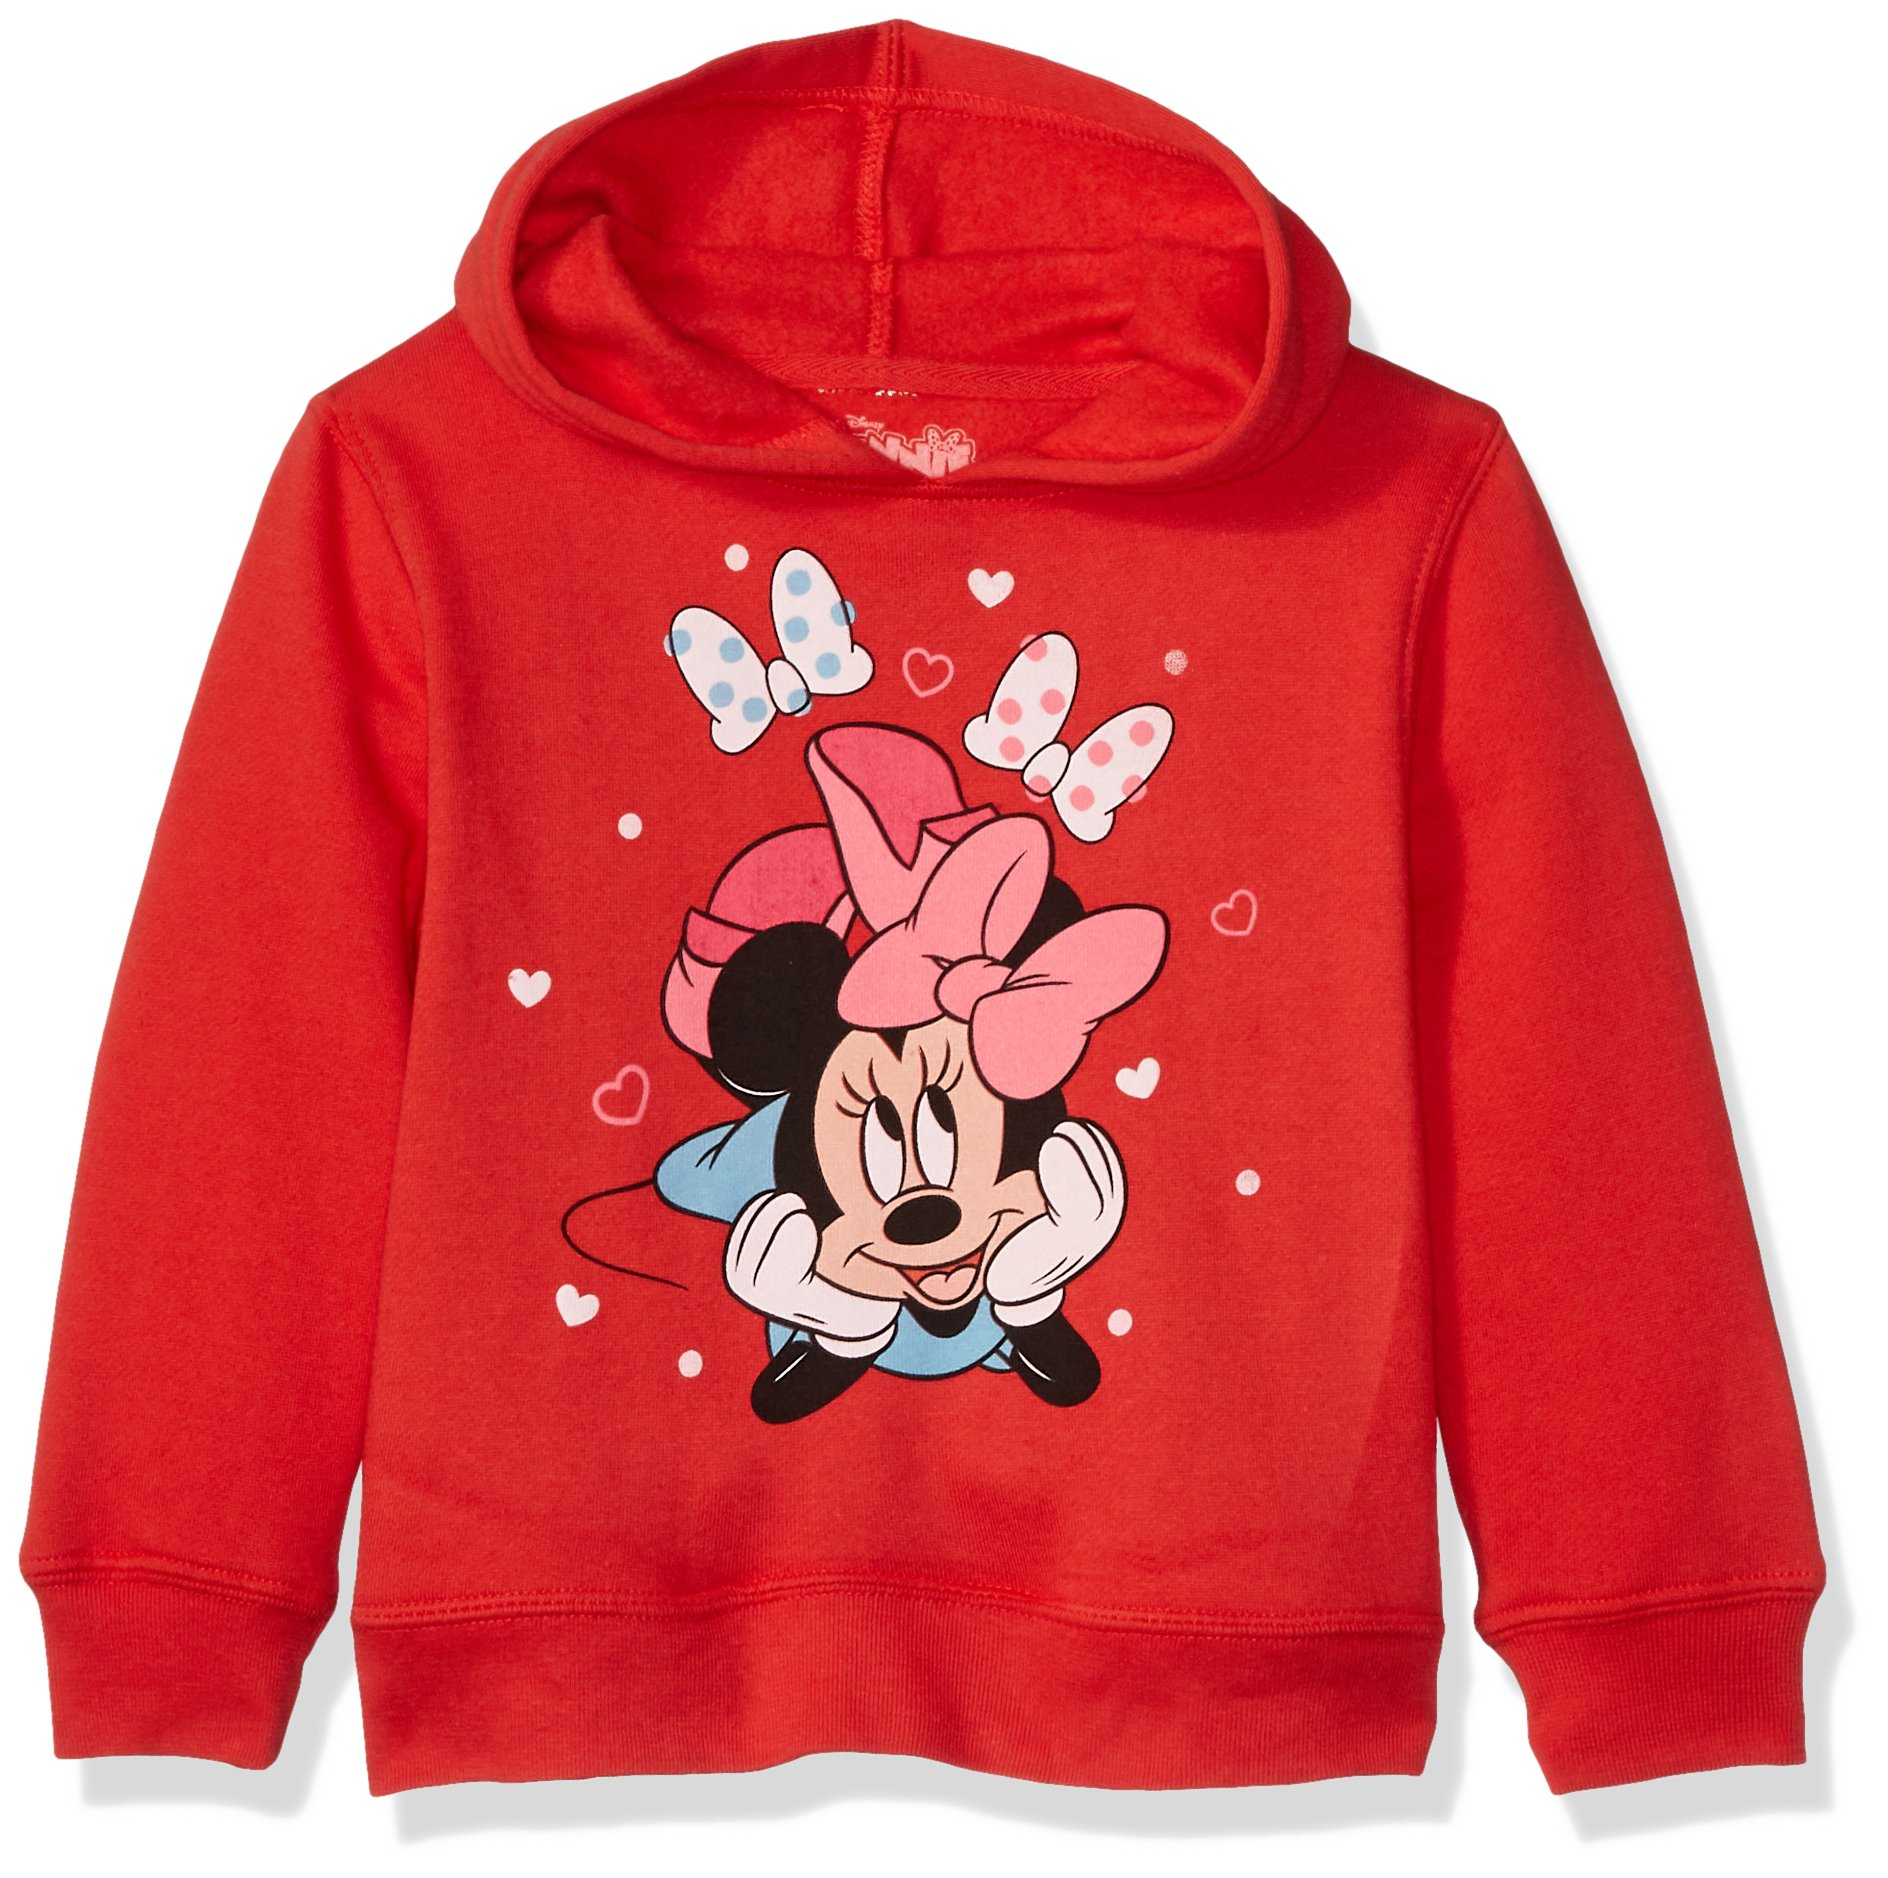 Disney Toddler Girls' Minnie Mouse Pullover Fleece, Minnie Bow, 4T